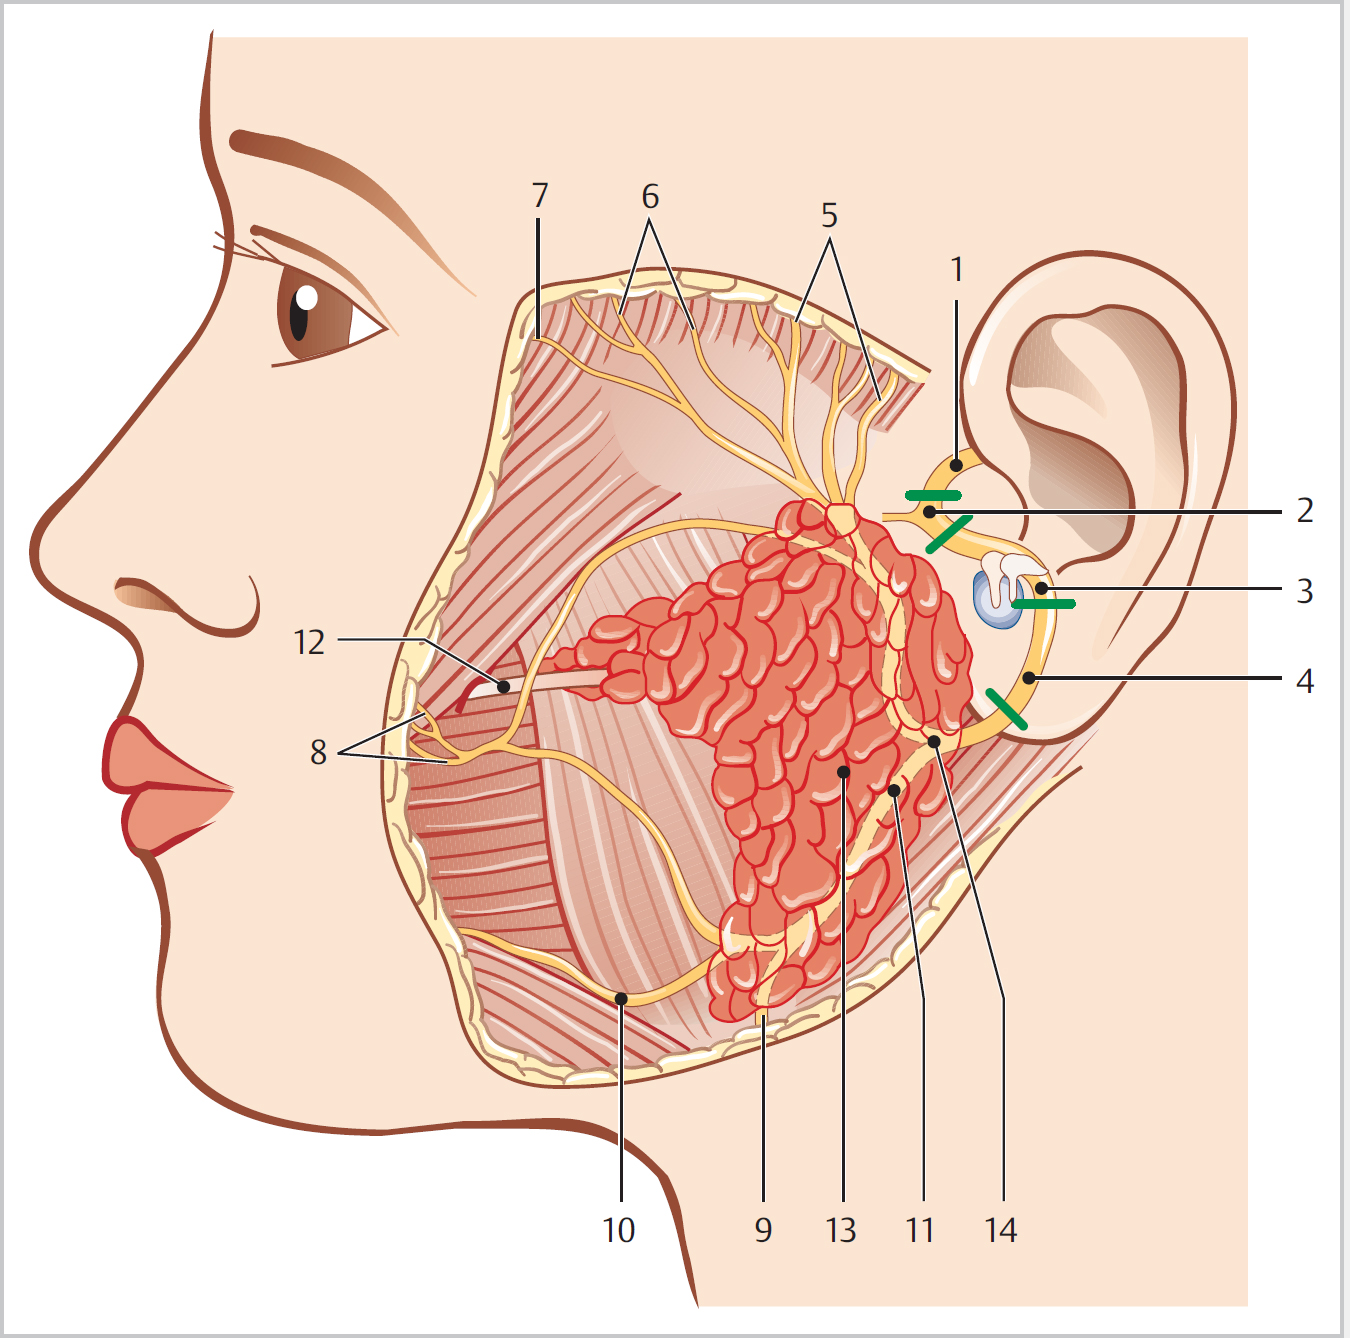 Shapes,a facial nerve picture